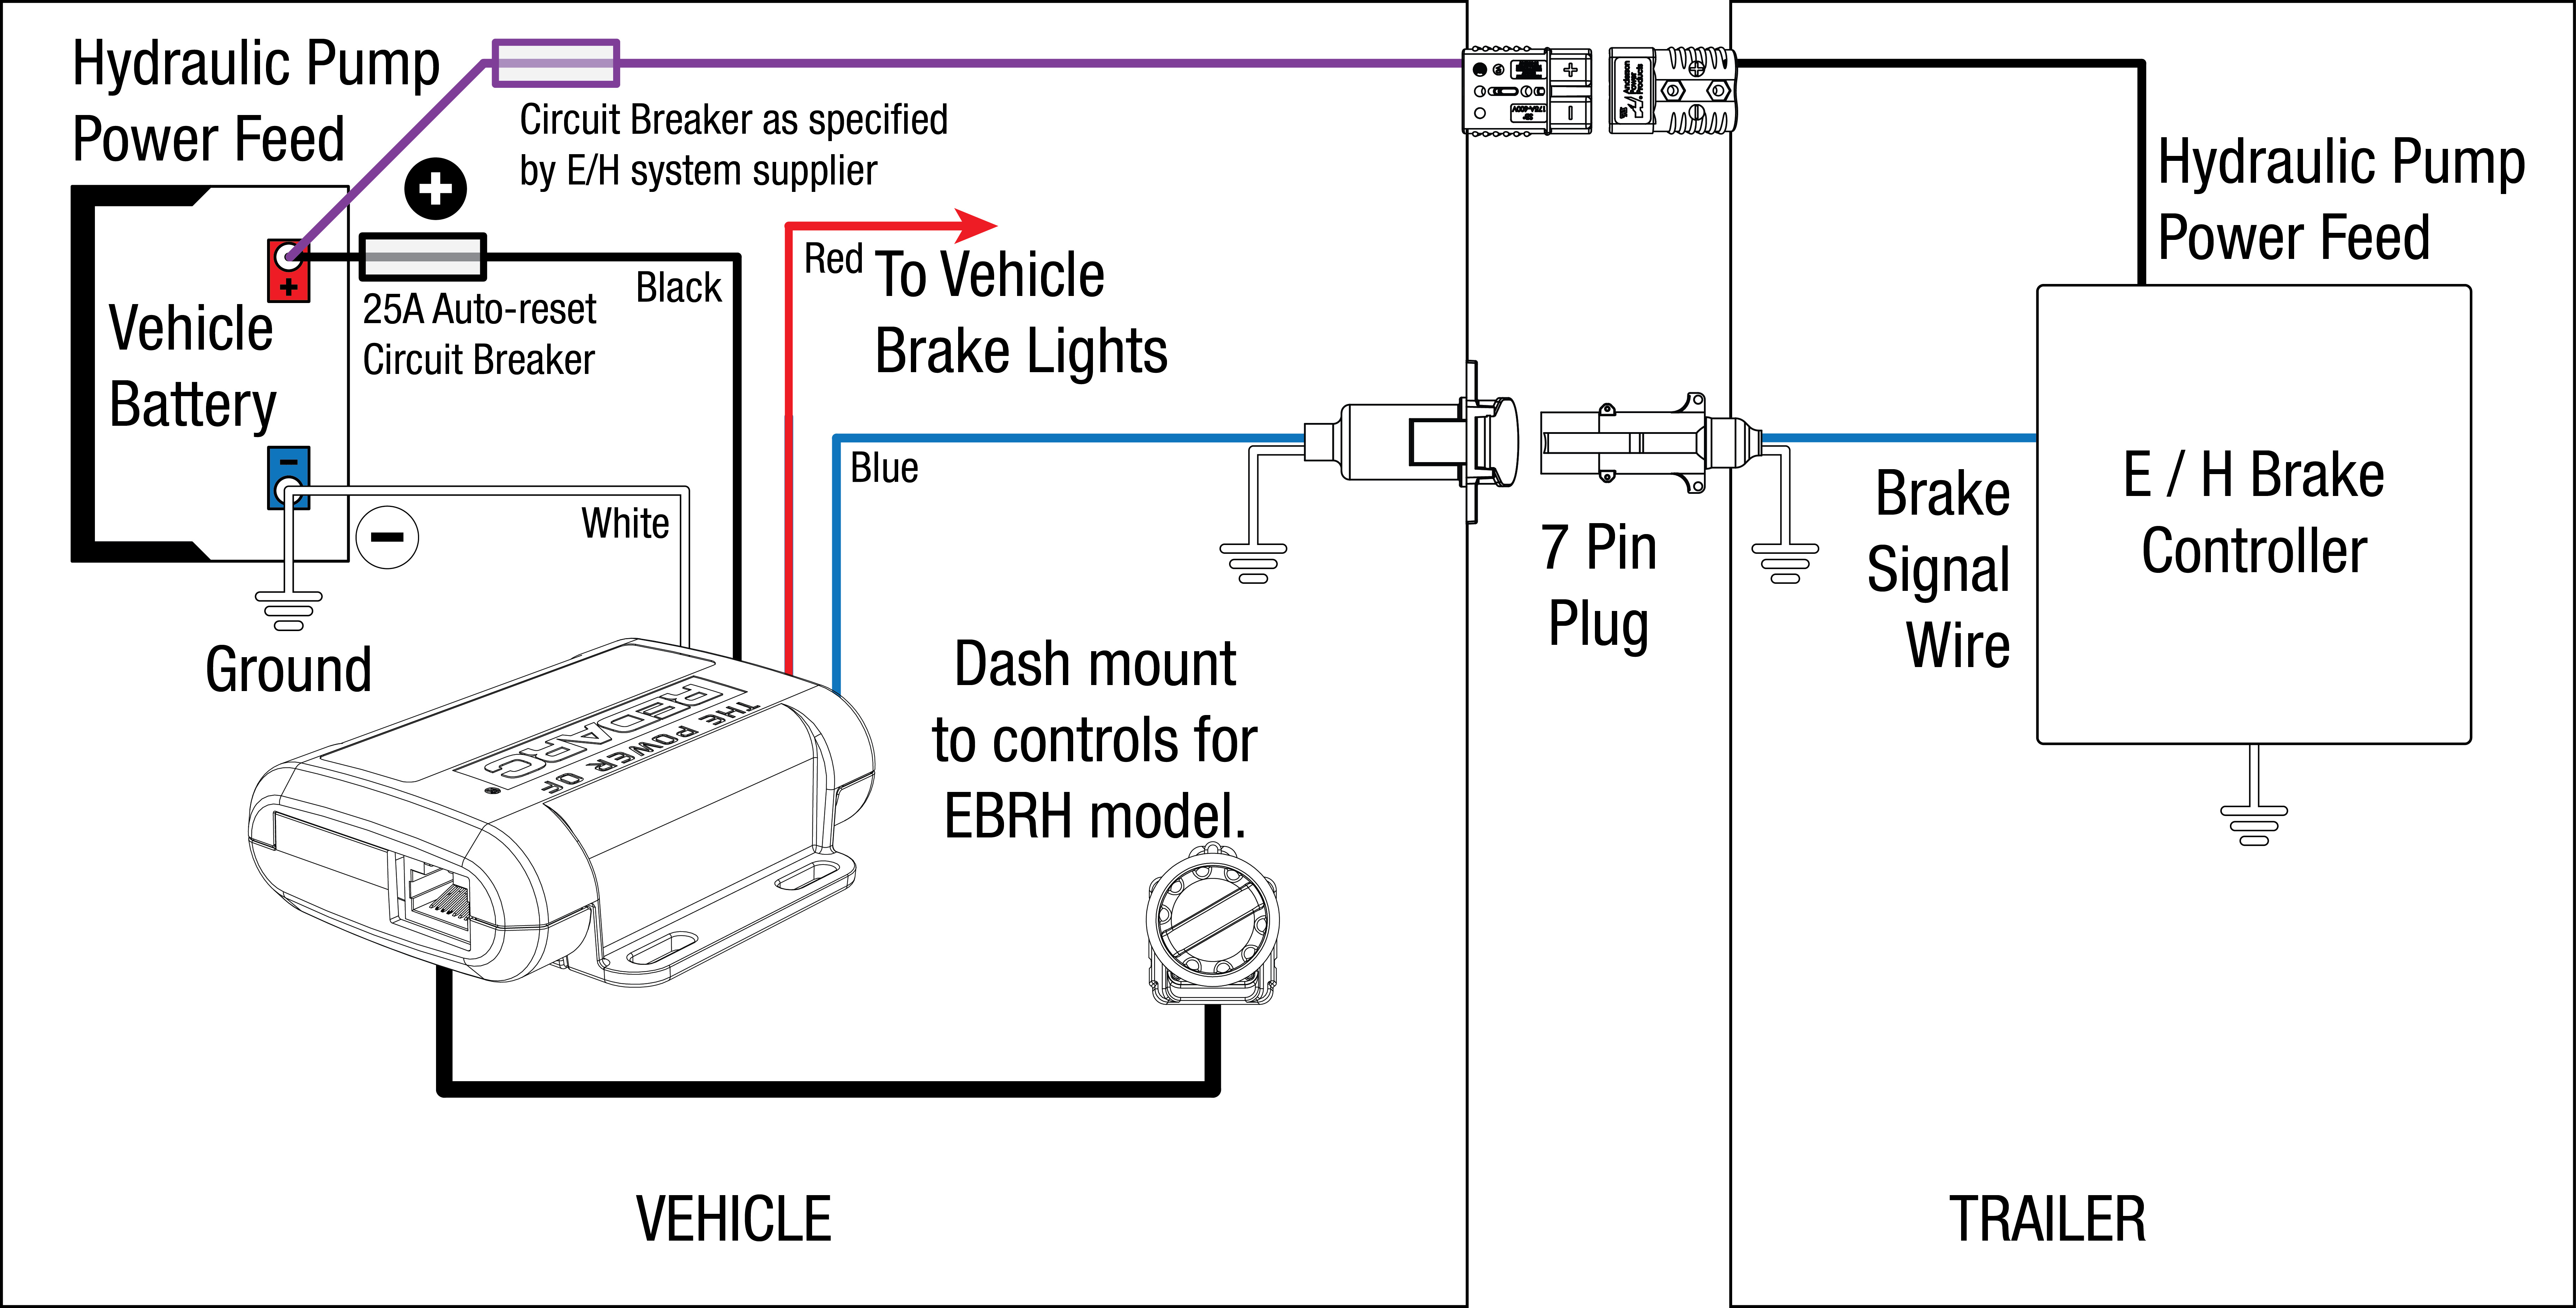 Tow-Pro Electric/hydraulic Braking Systems | Redarc Electronics - Electric Brake Wiring Diagram